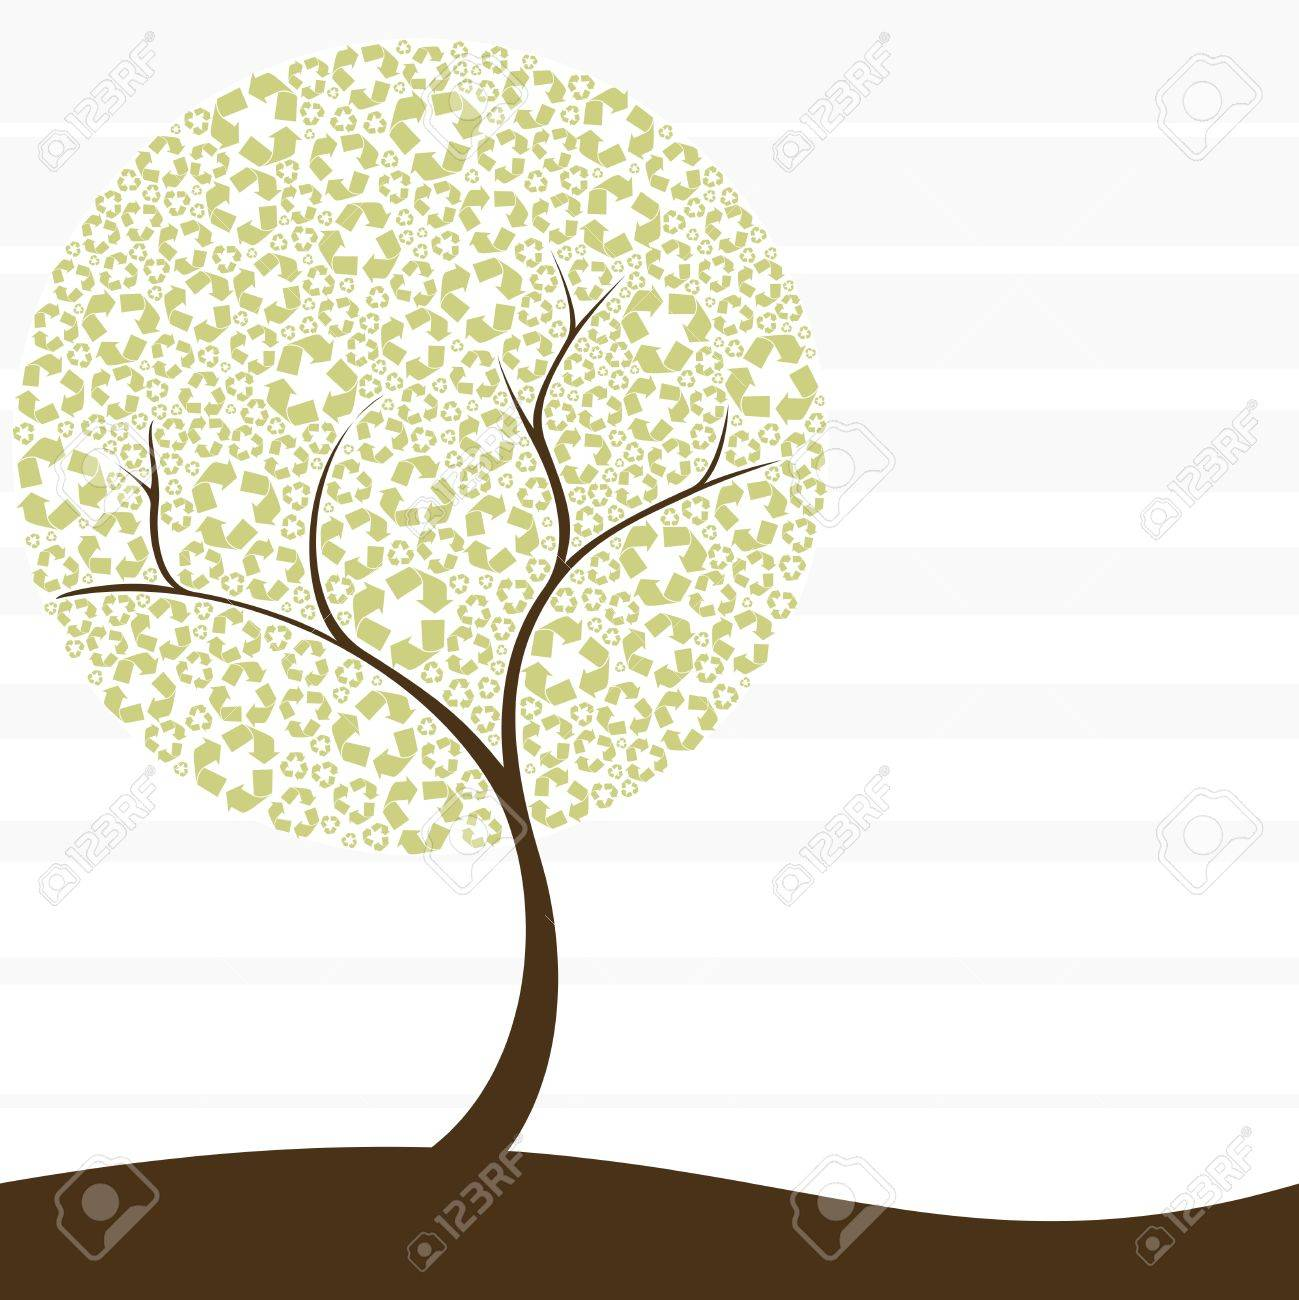 Conceptual illustration of a tree with recycling symbol leaves. Graphics are grouped and in several layers for easy editing. The file can be scaled to any size. Stock Vector - 4940799